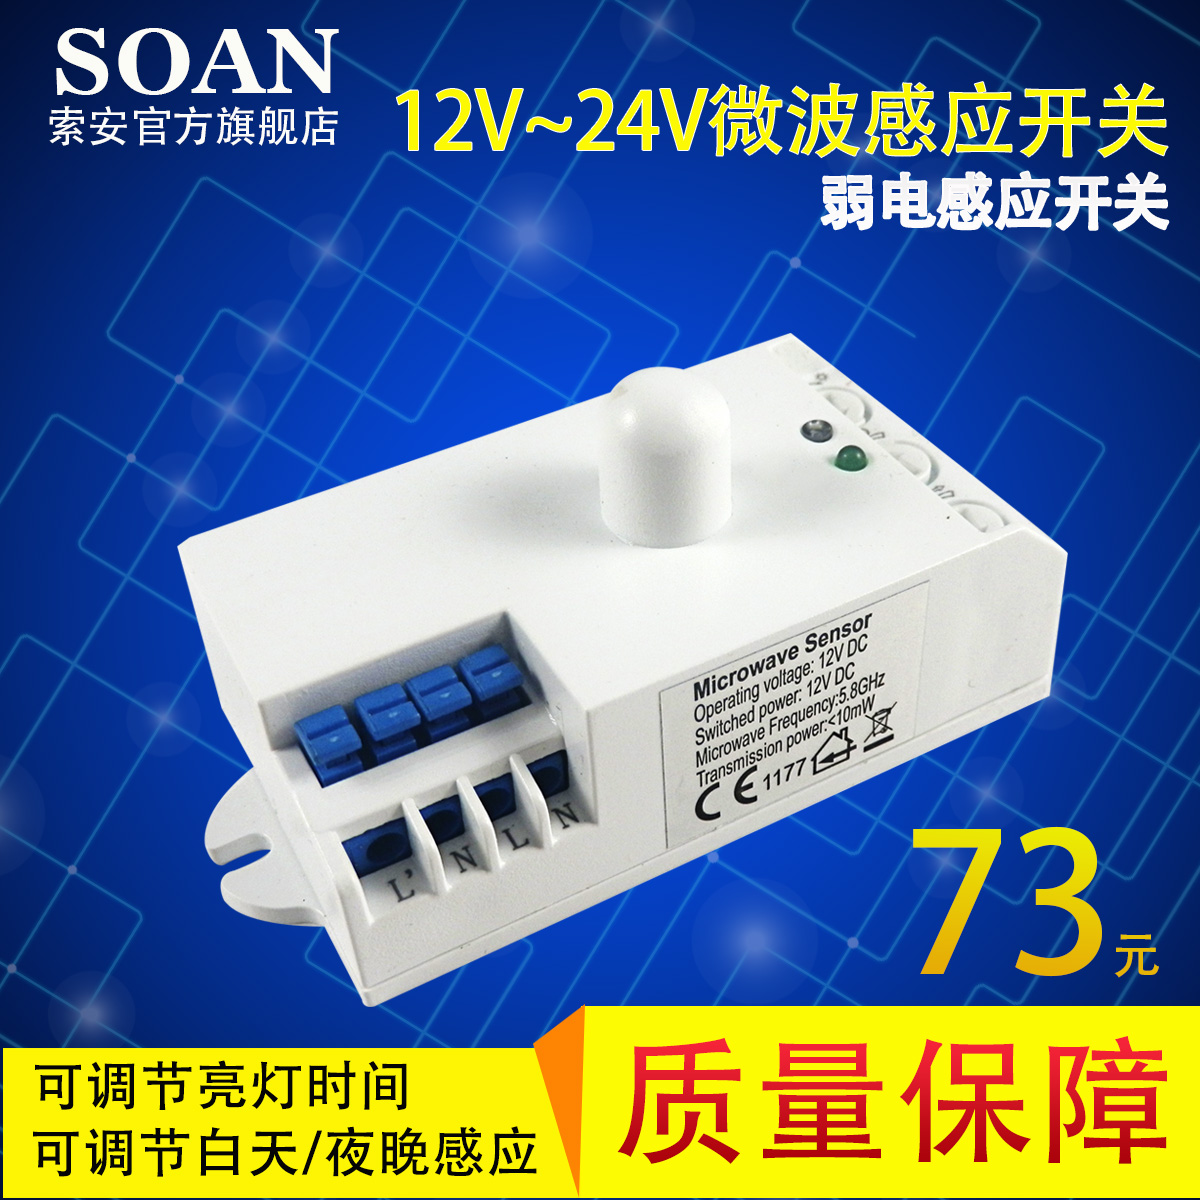 SOAN Human Induction Switch Microwave Inductor Radar Induction Switch Module Bathroom 12V~24V